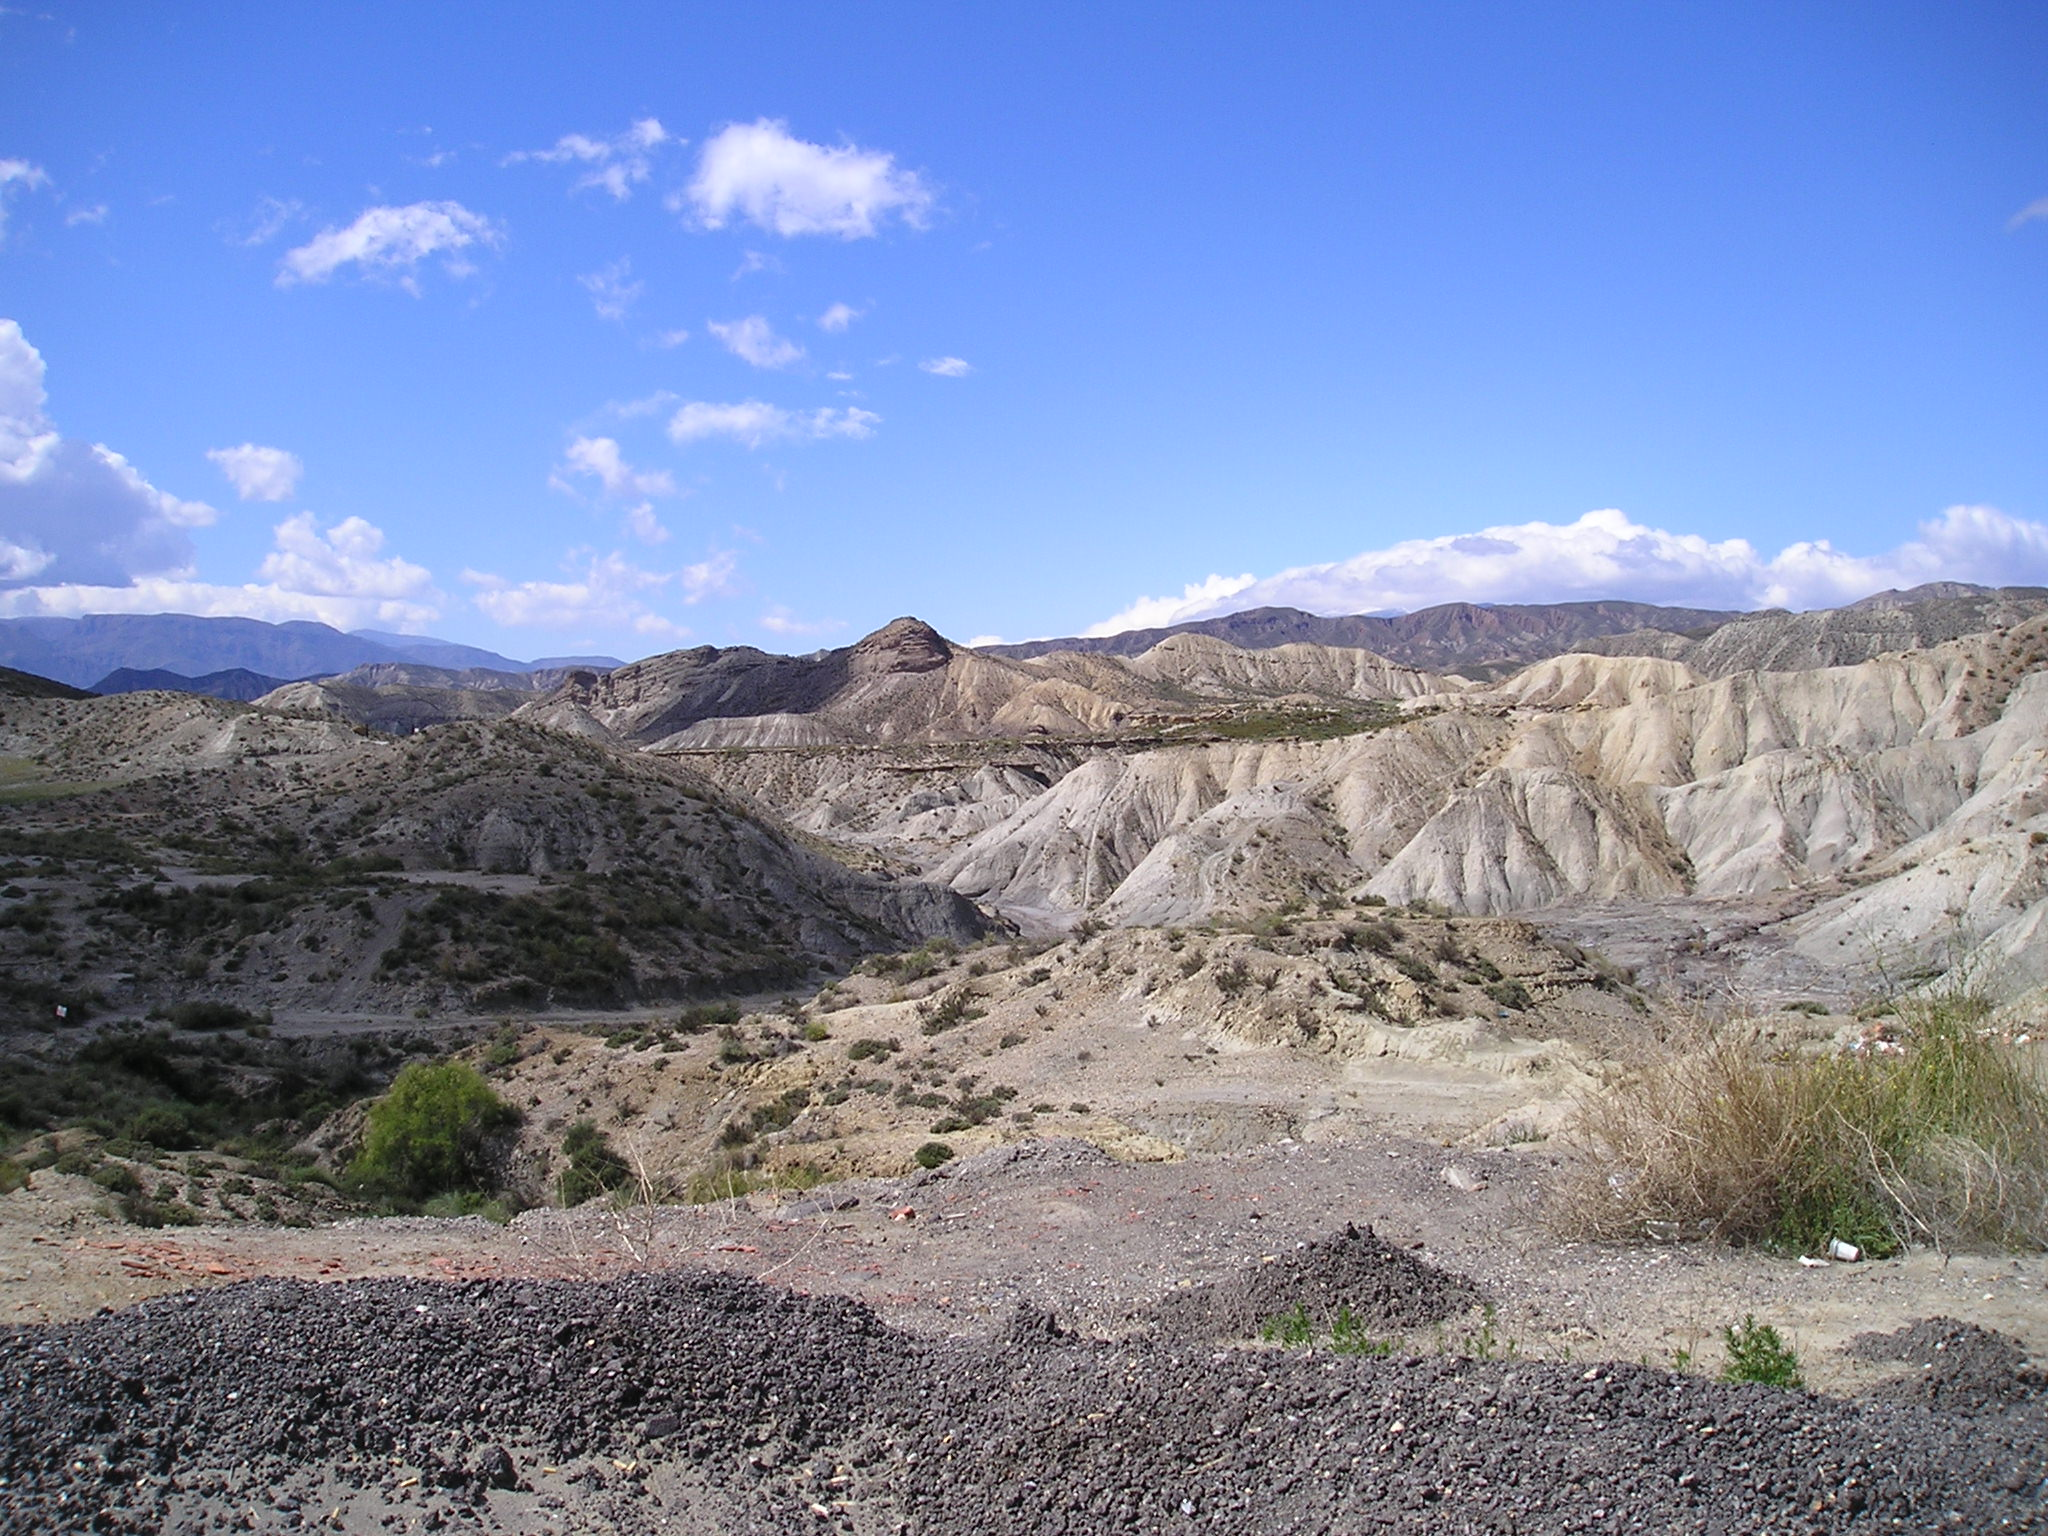 The Tabernas Badlands